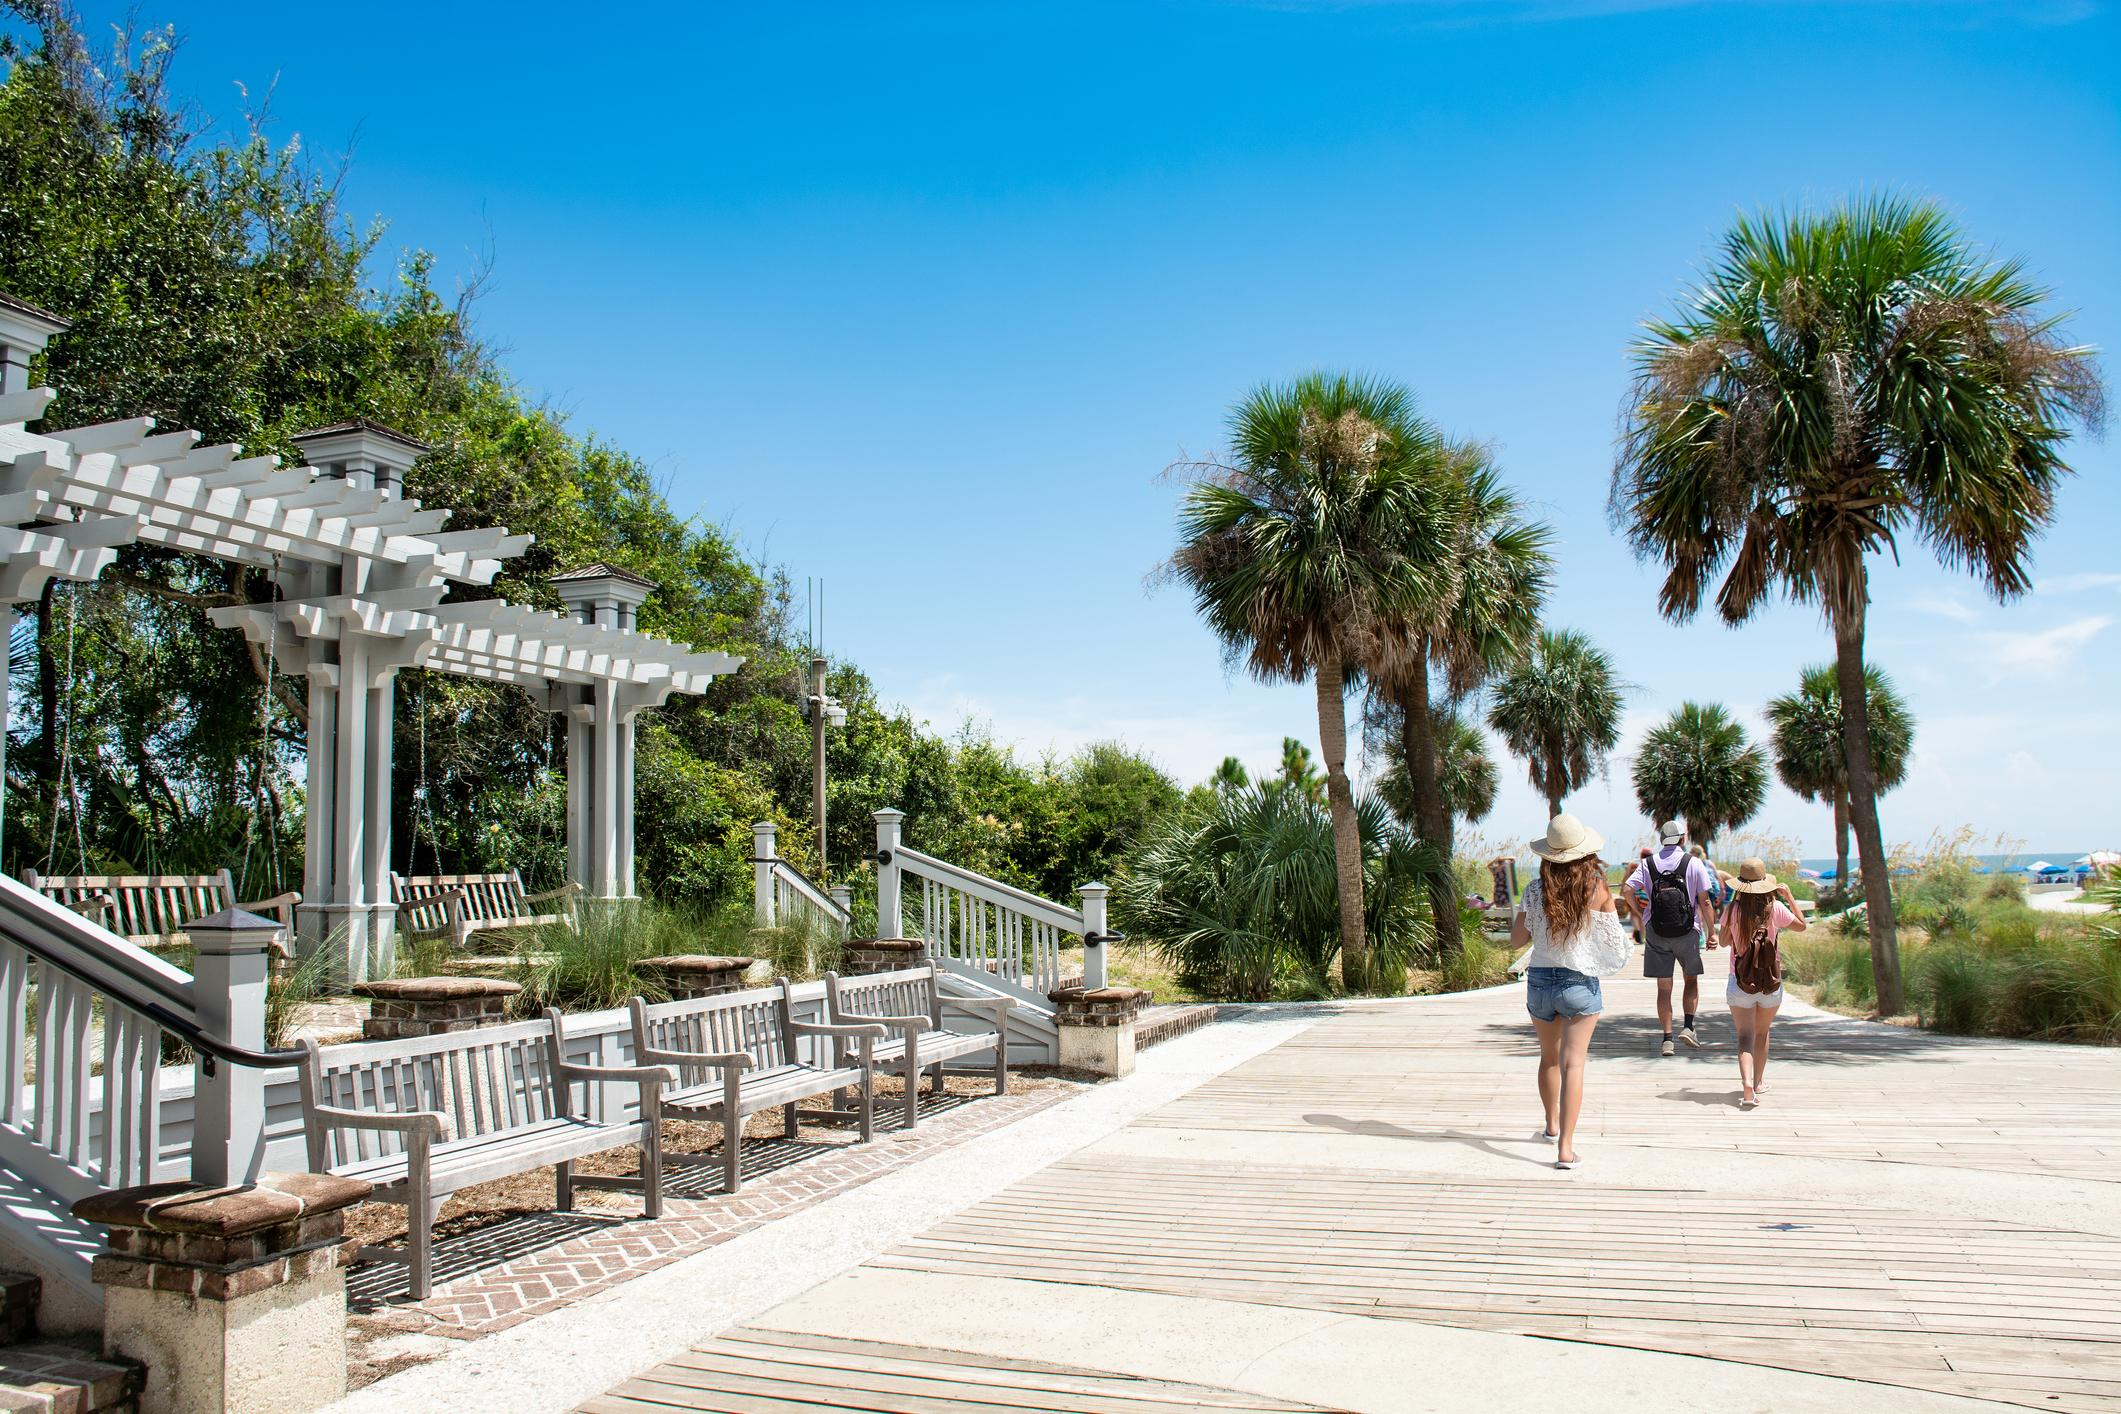 With miles of white sand beaches, amazing amenities, and access to incredible outdoor activities, the Palmetto Dunes Resort is luxury living at its finest.